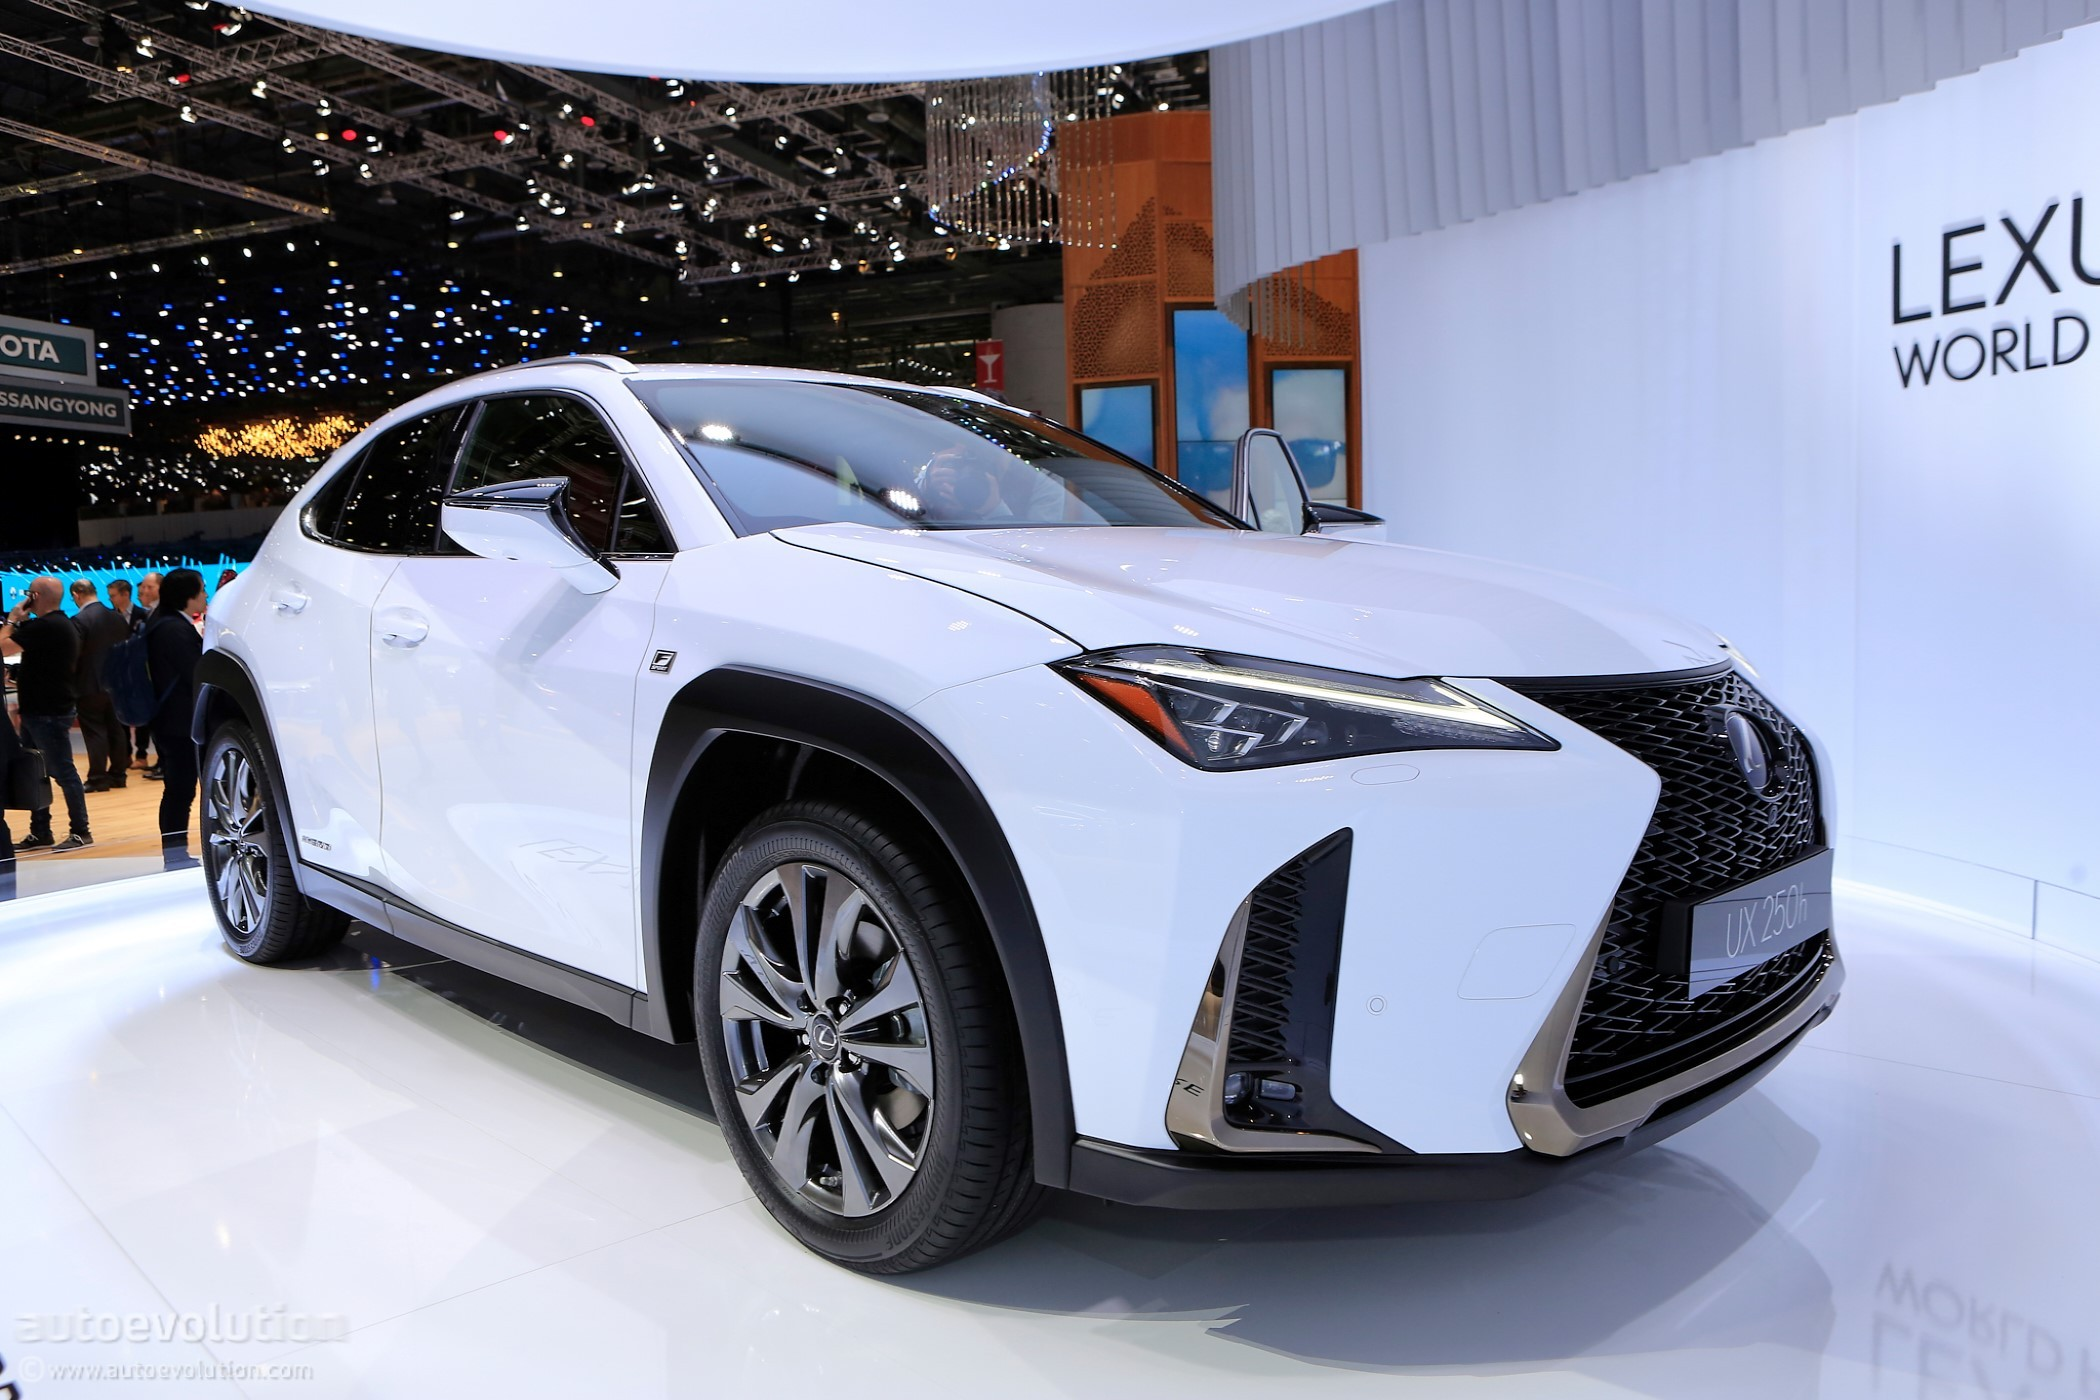 Car Shows In Ct >> 2019 Lexus UX 250h Shows Off Its Spindle Grille In Geneva - autoevolution